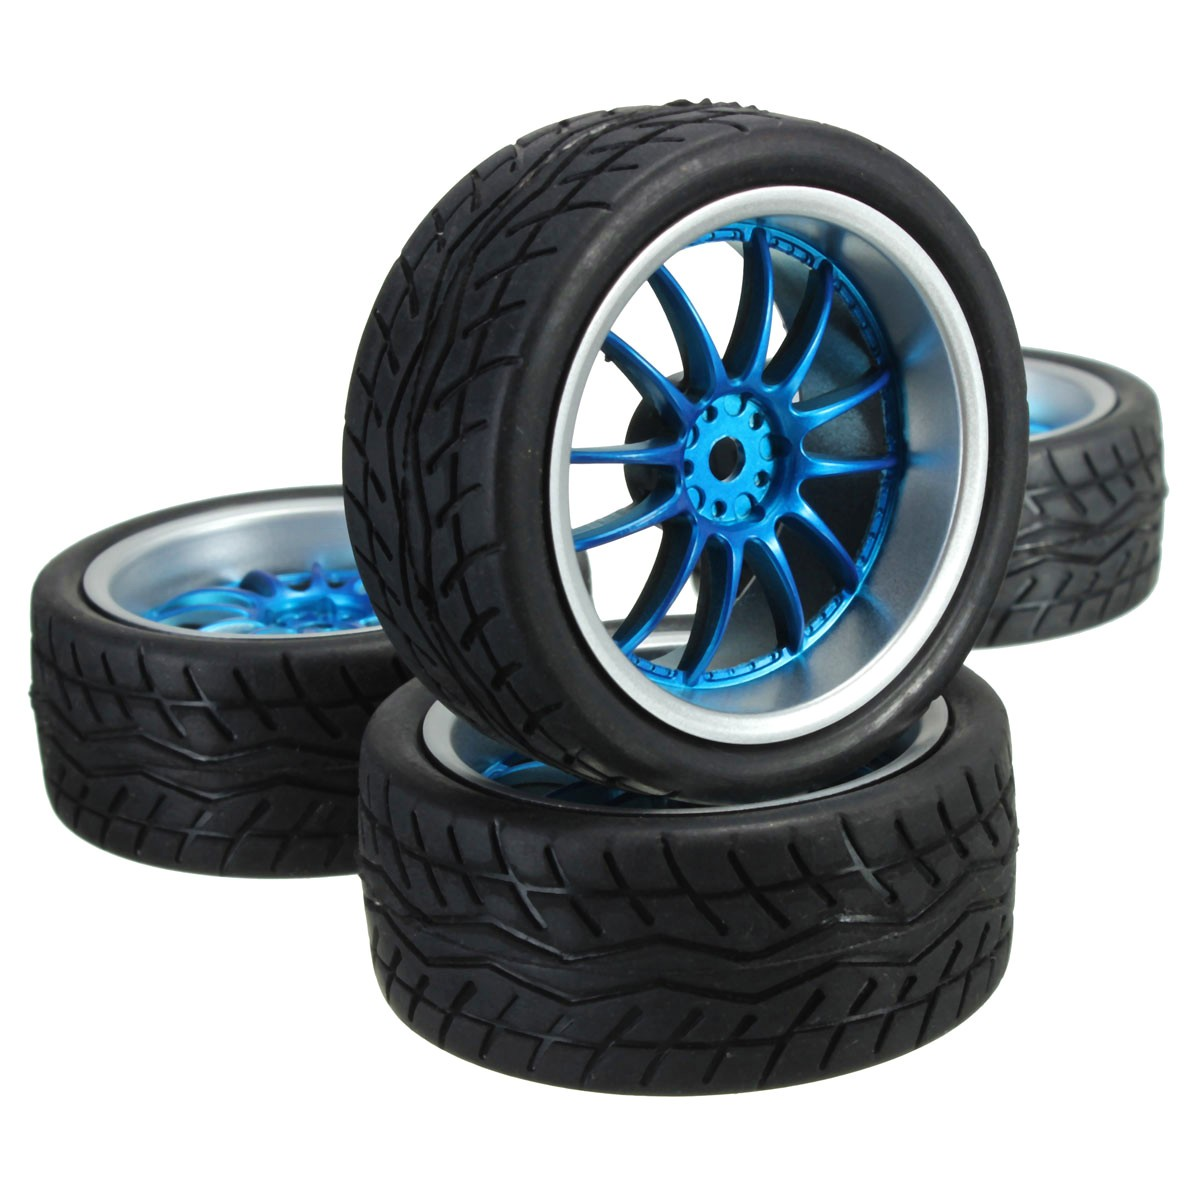 4Pcs Rubber RC Flat Racing Tires Tyre Wheel 12-spoke Wheel Rim For 1:10 On-Road Intelligent Model Car aluminum 6 spoke wheel rim for 1 10 rc on road racing car